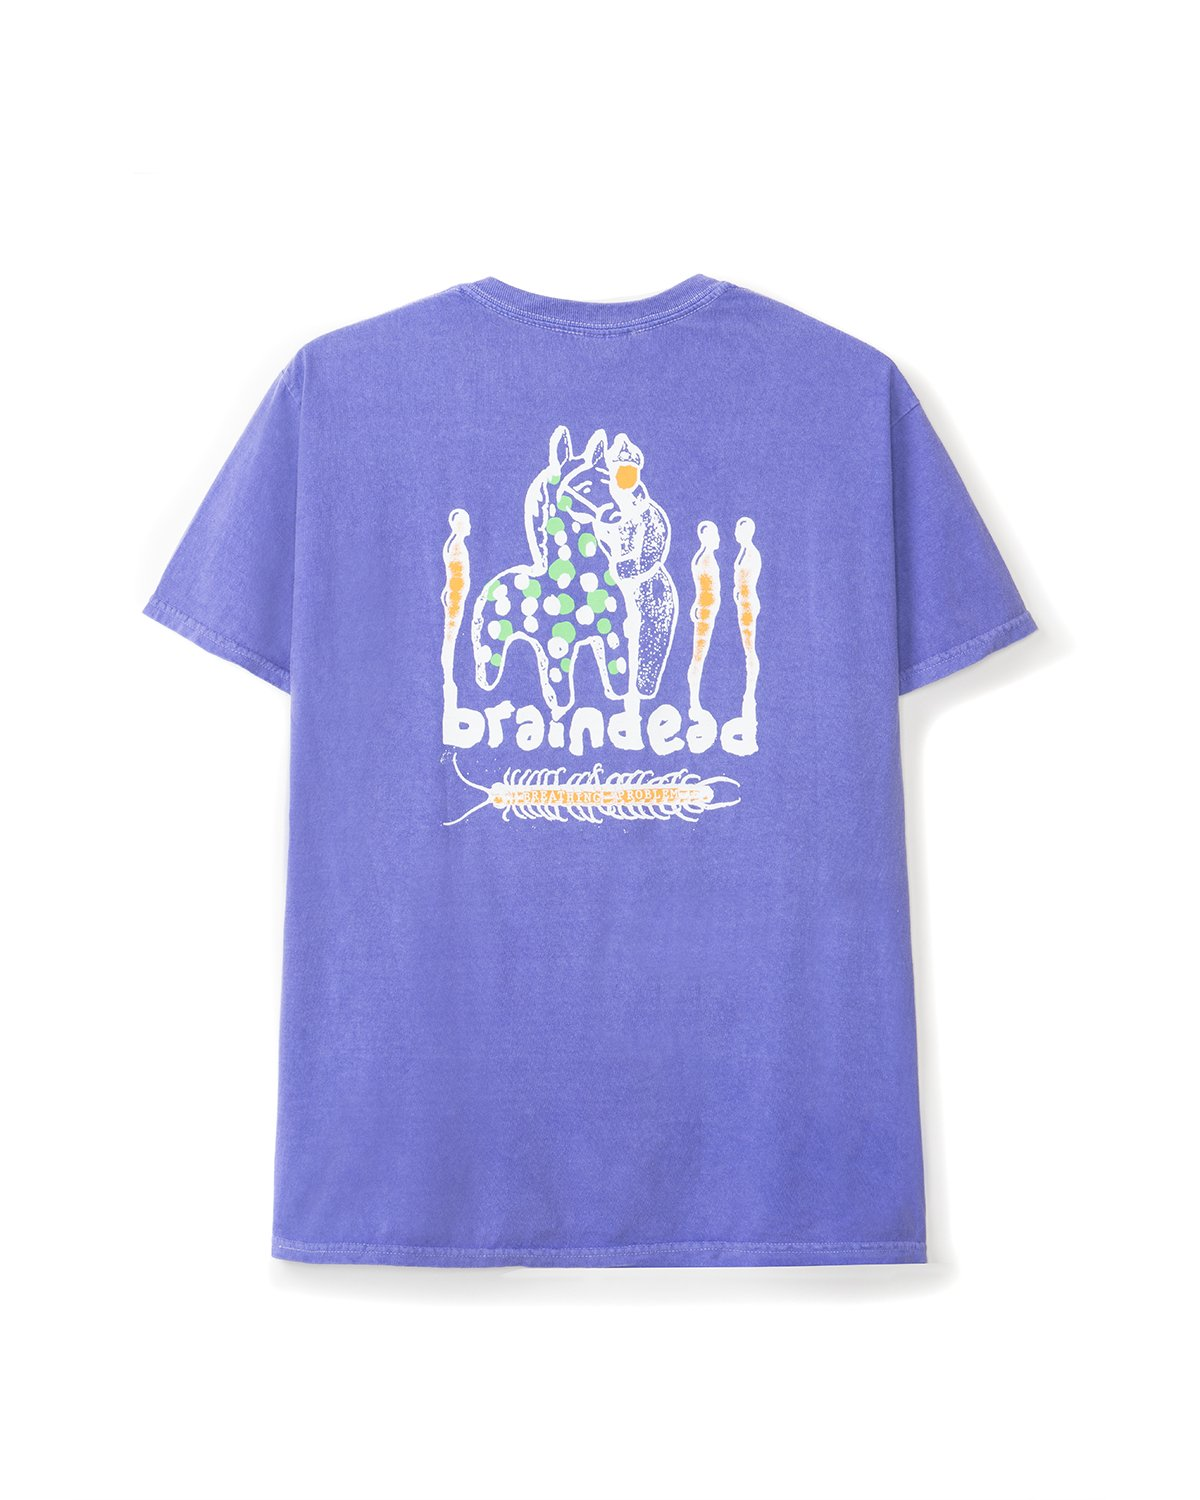 Braindead_Prefalltee_Purple_Flat_Back_grande@3x